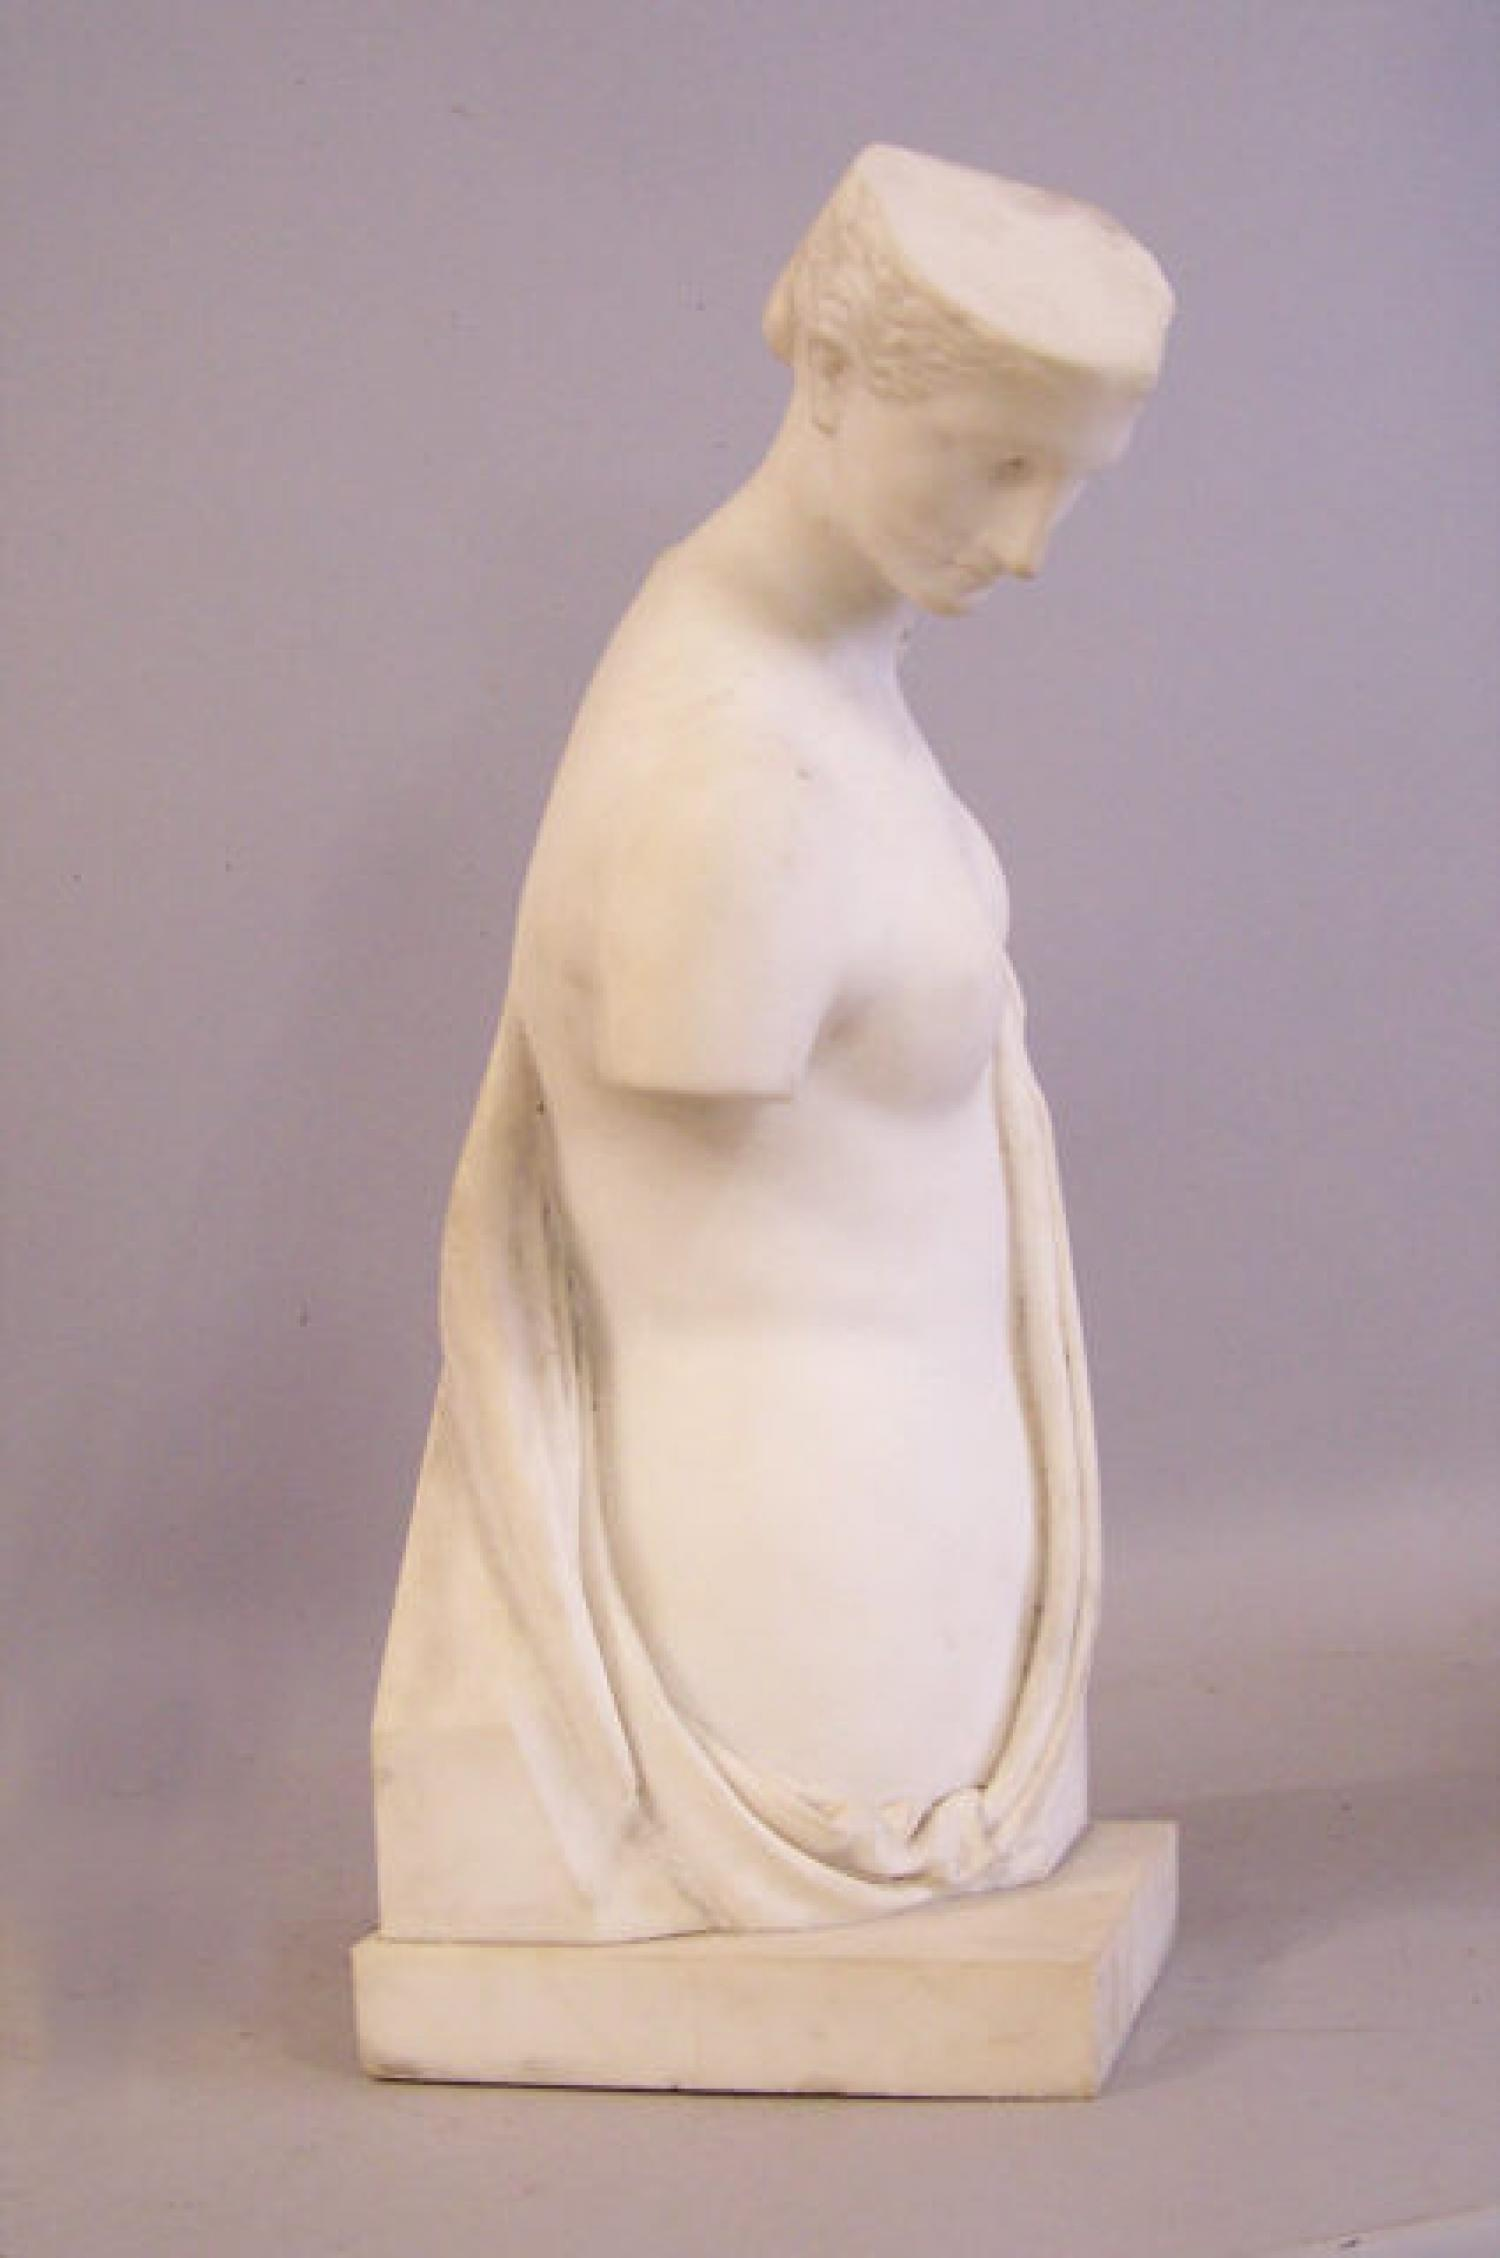 19th century Marble sculpture torso of a woman